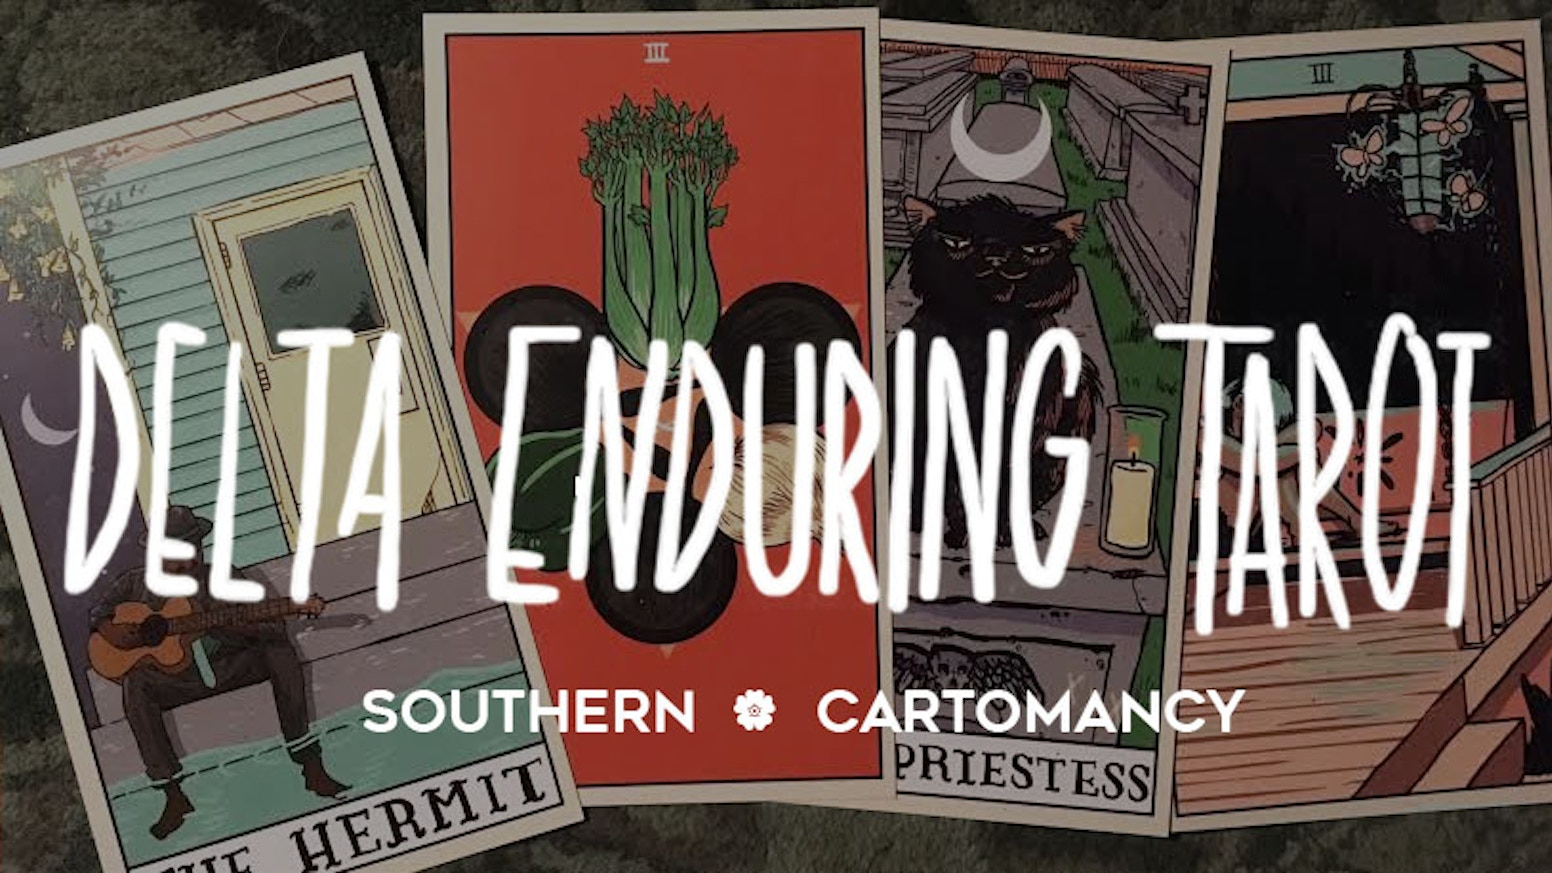 A modern 82-card color illustrated tarot deck centering on the natural beauty and struggles of life in the Mississippi Delta.